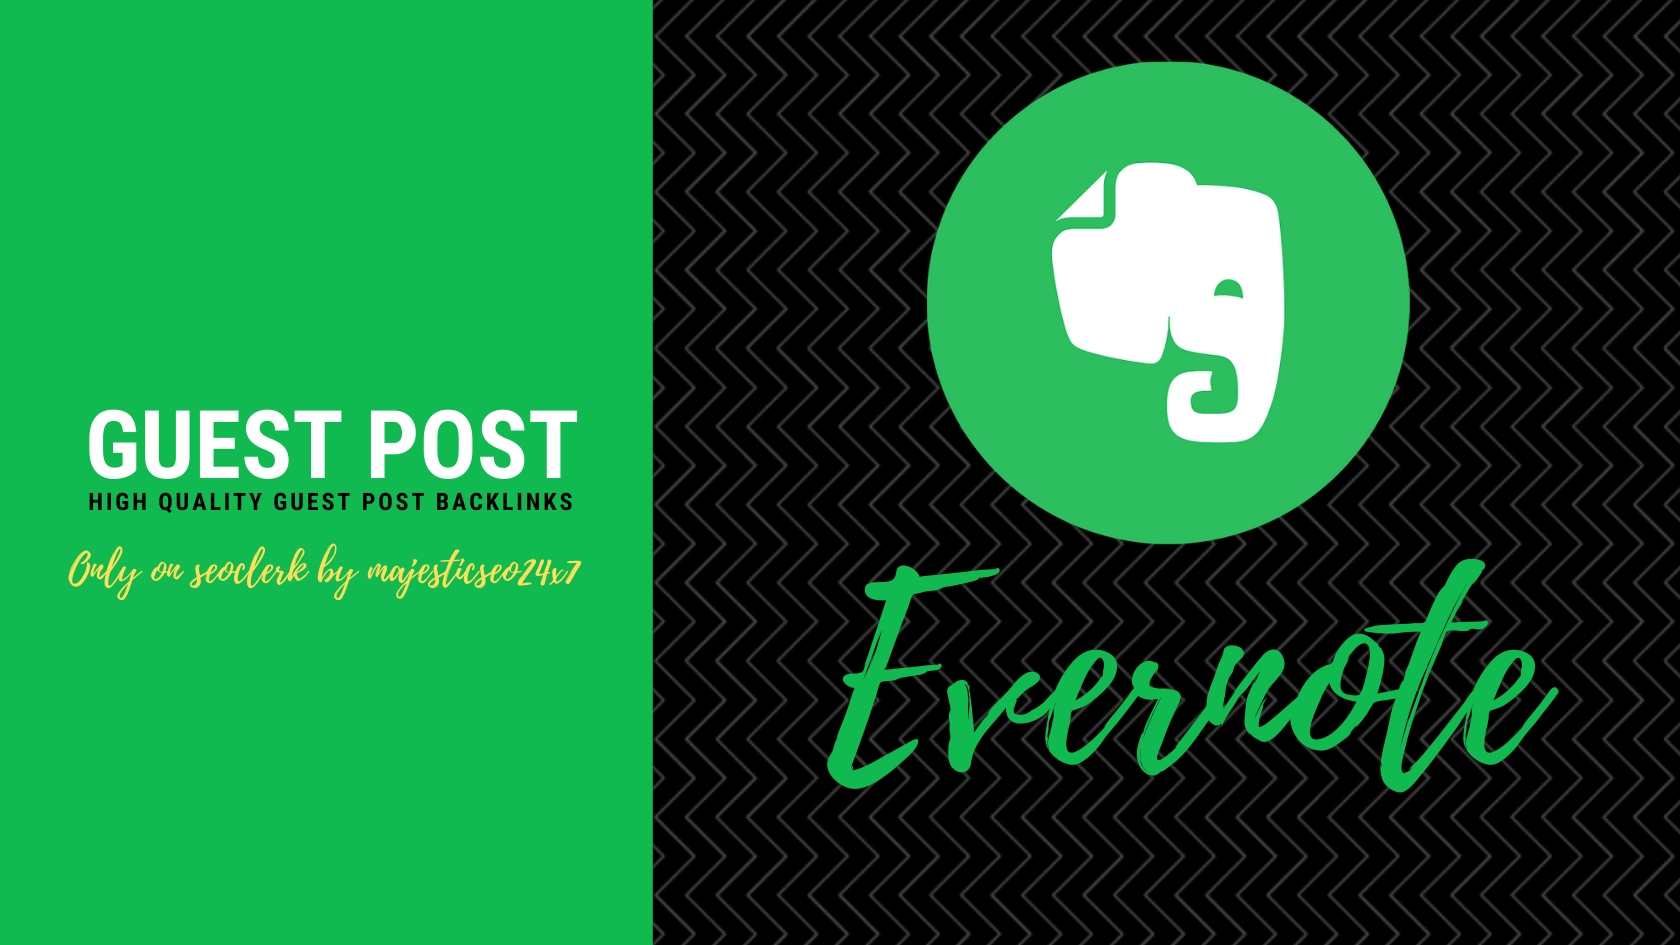 Publish Guest Post On Evernote. com DA 92 and It's permanent backlinks